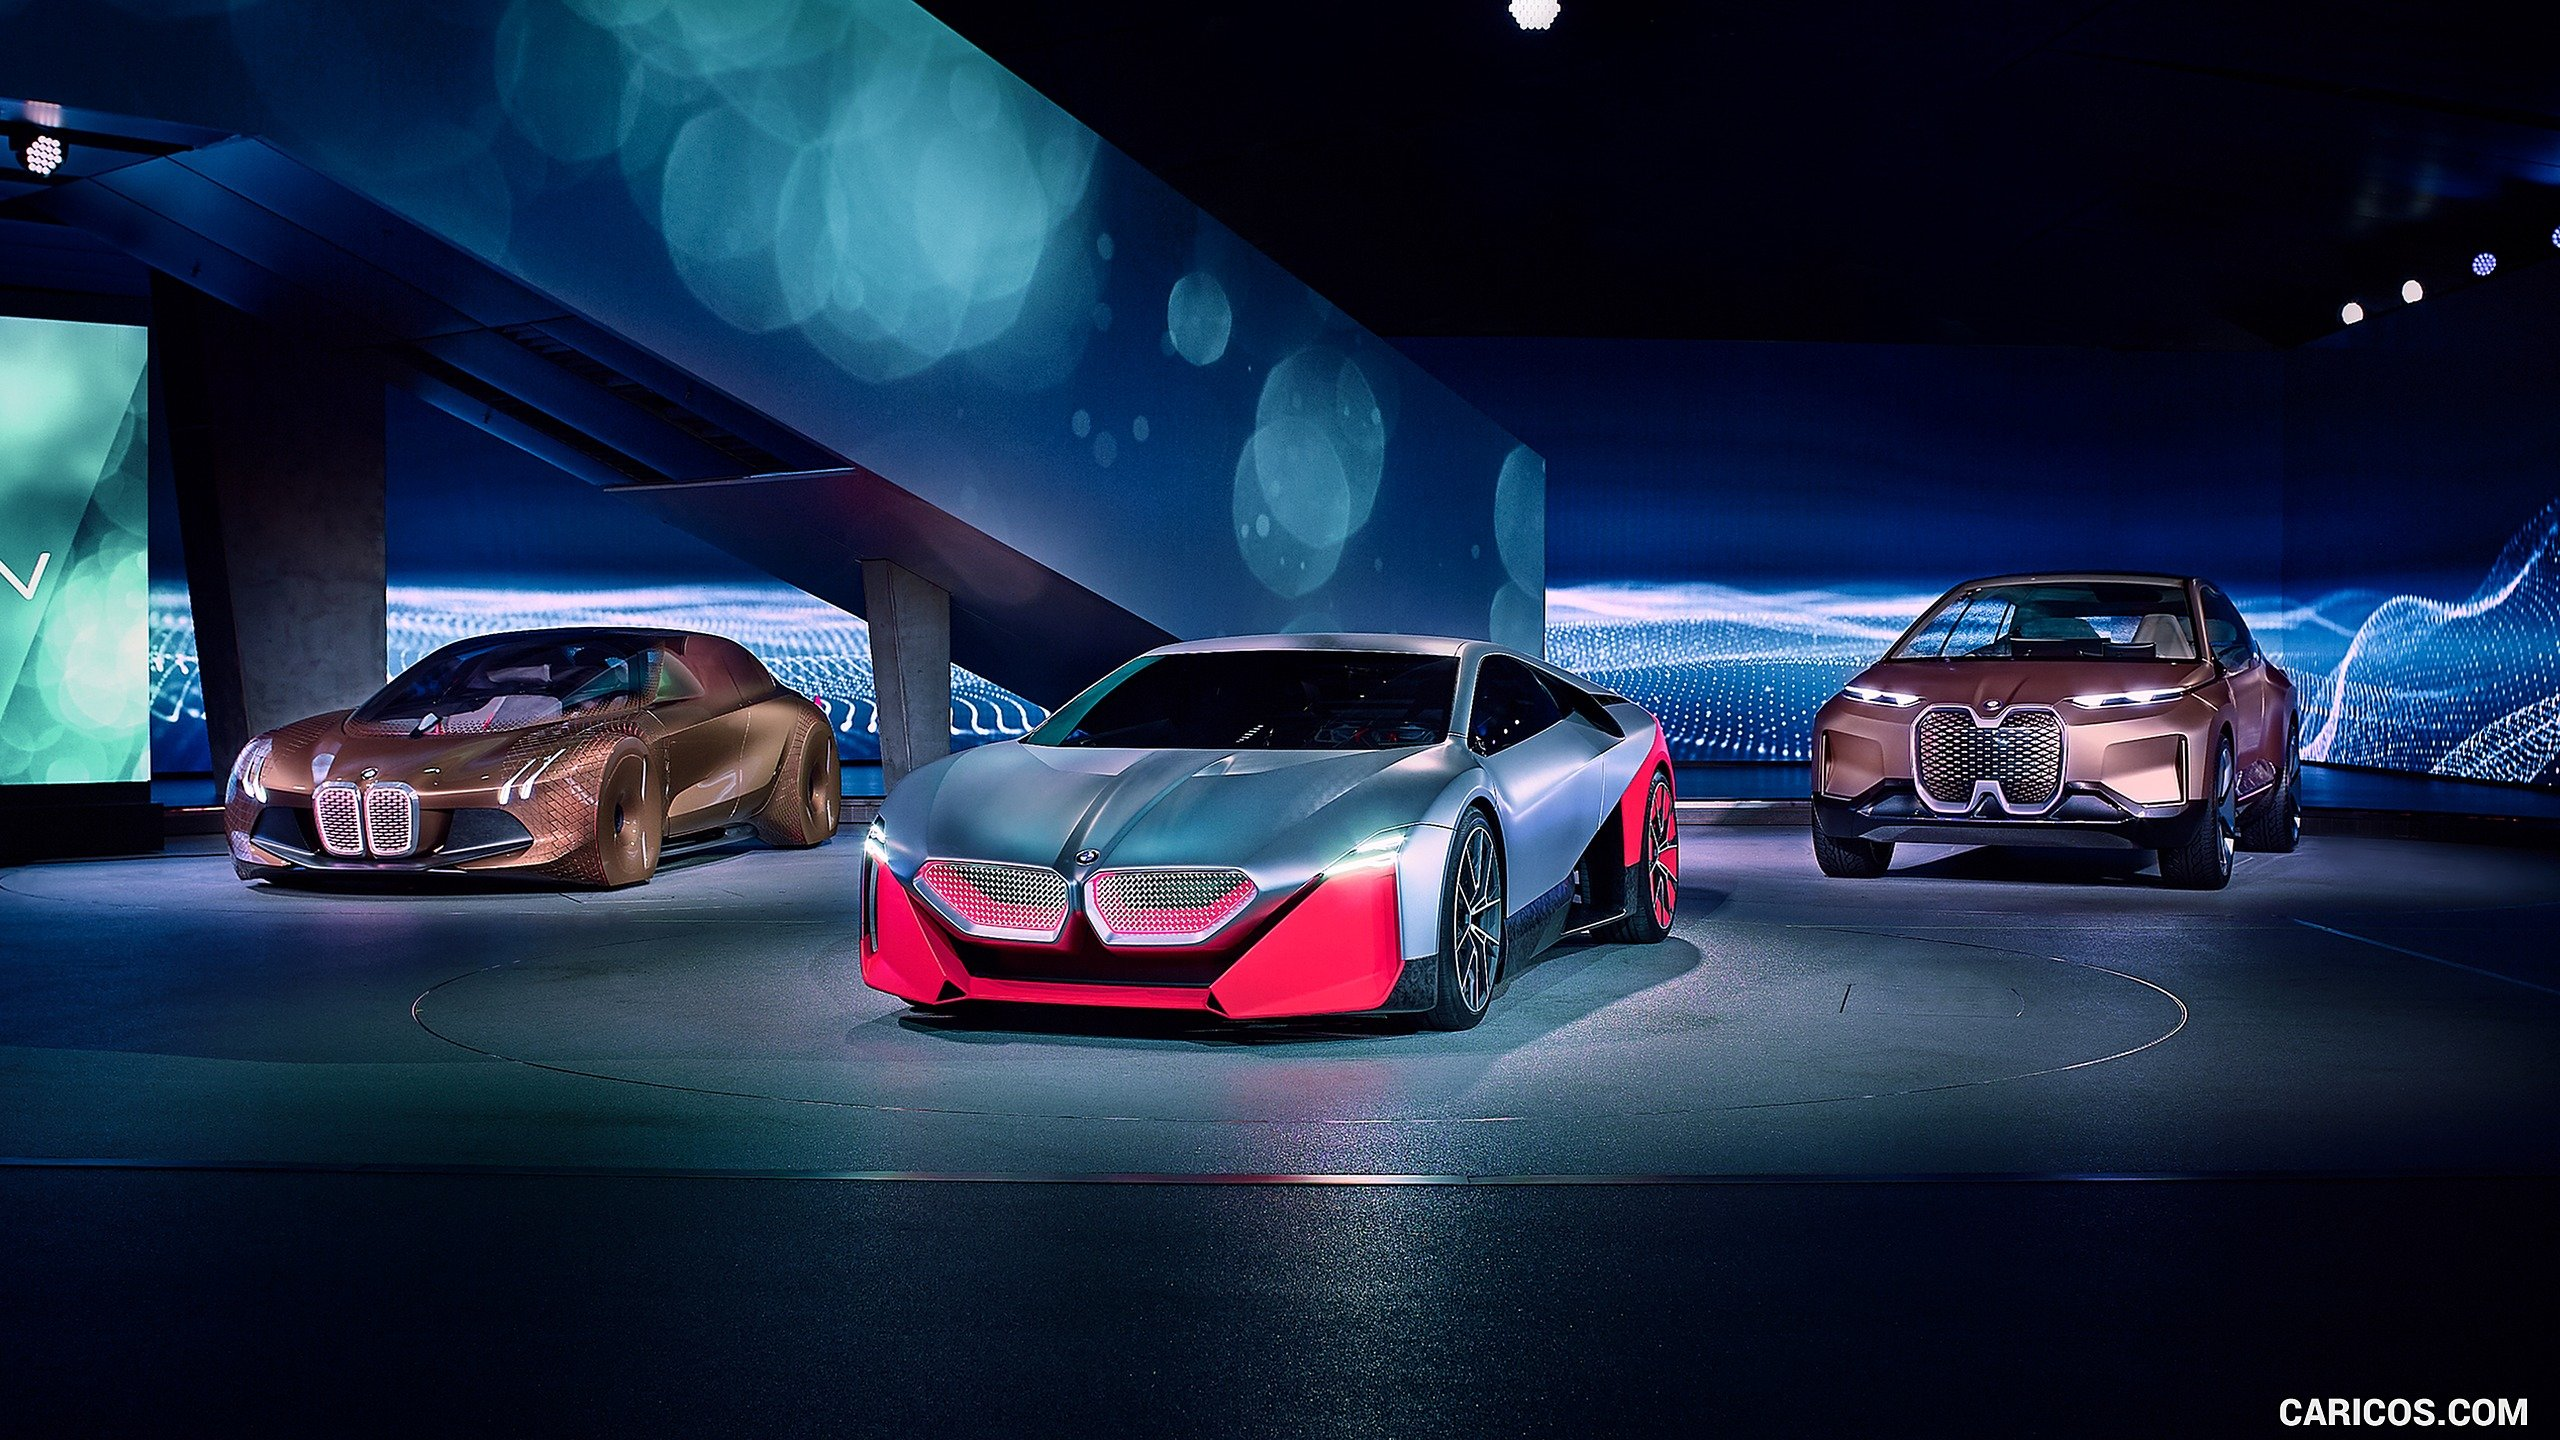 2019 BMW Vision M Next   Presentation HD Wallpaper 95 2560x1440